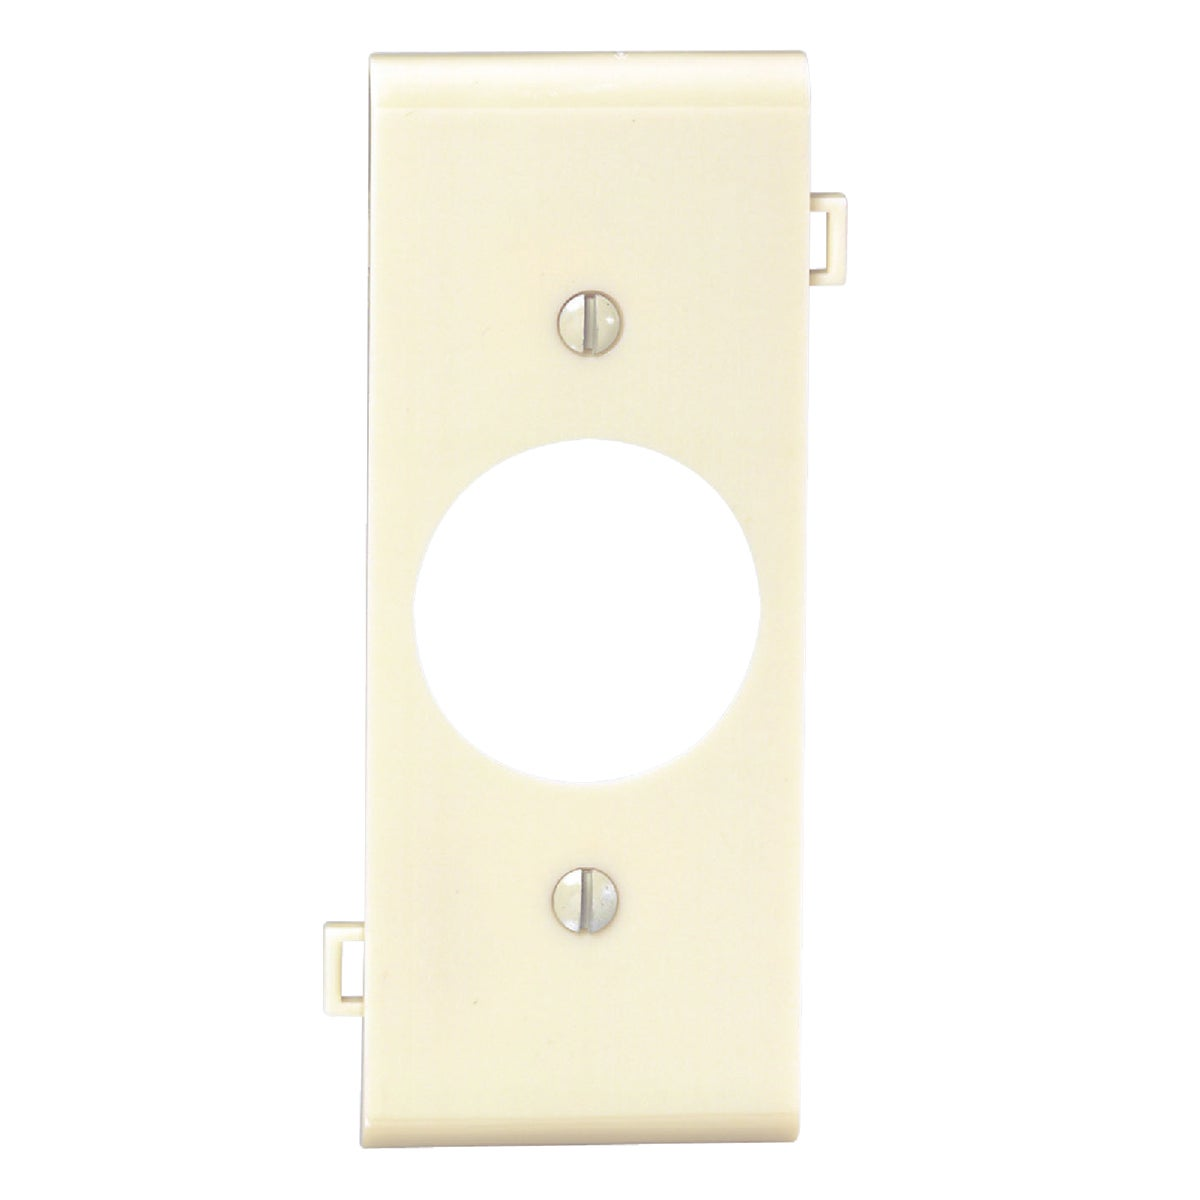 IV SINGLE CENTER PLATE - PSC7I by Leviton Mfg Co